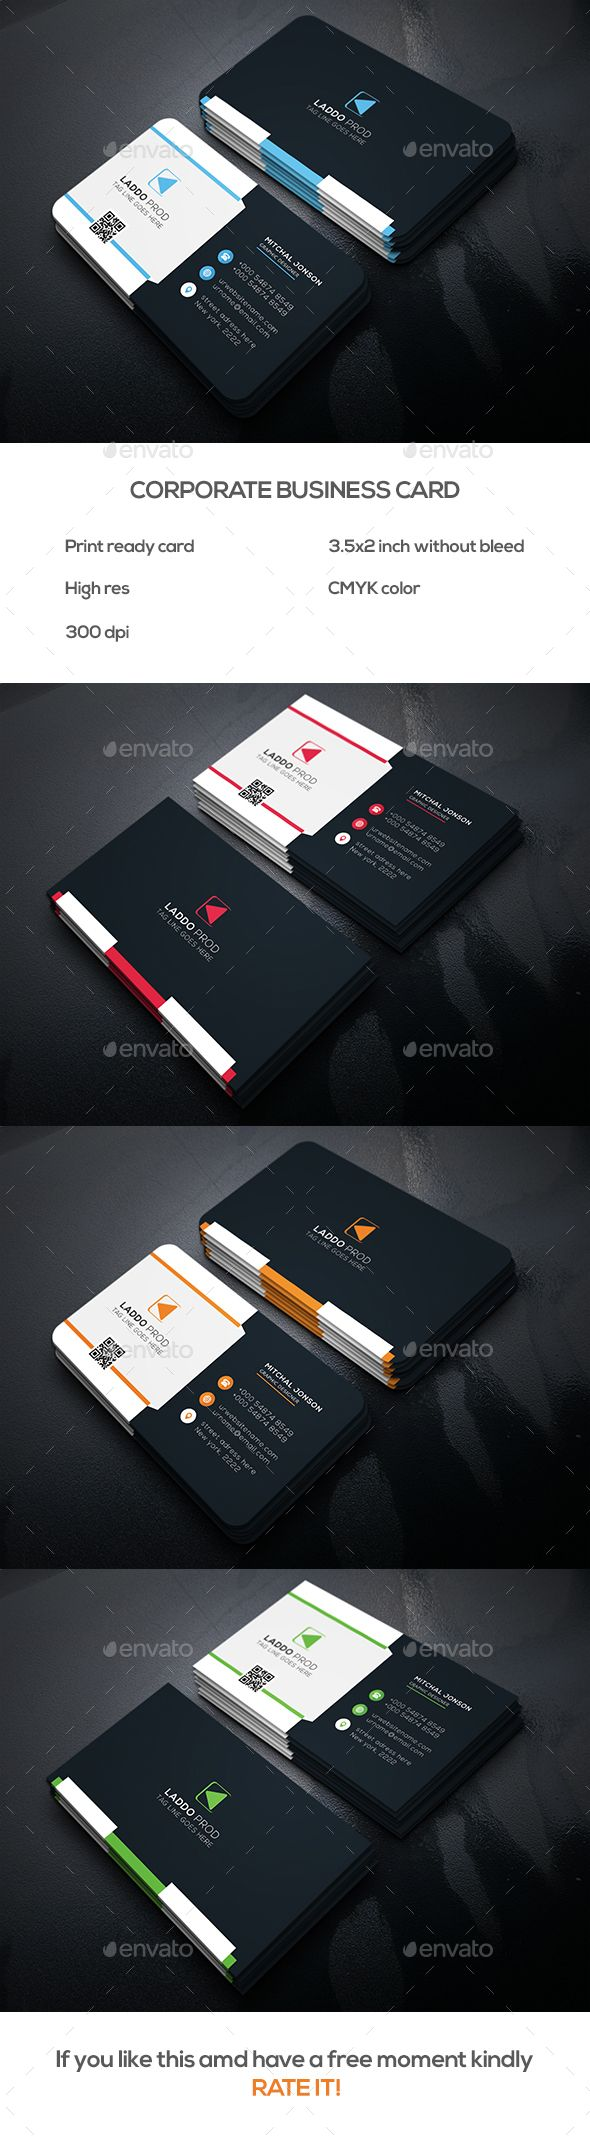 Corporate Business Card Template PSD Download here